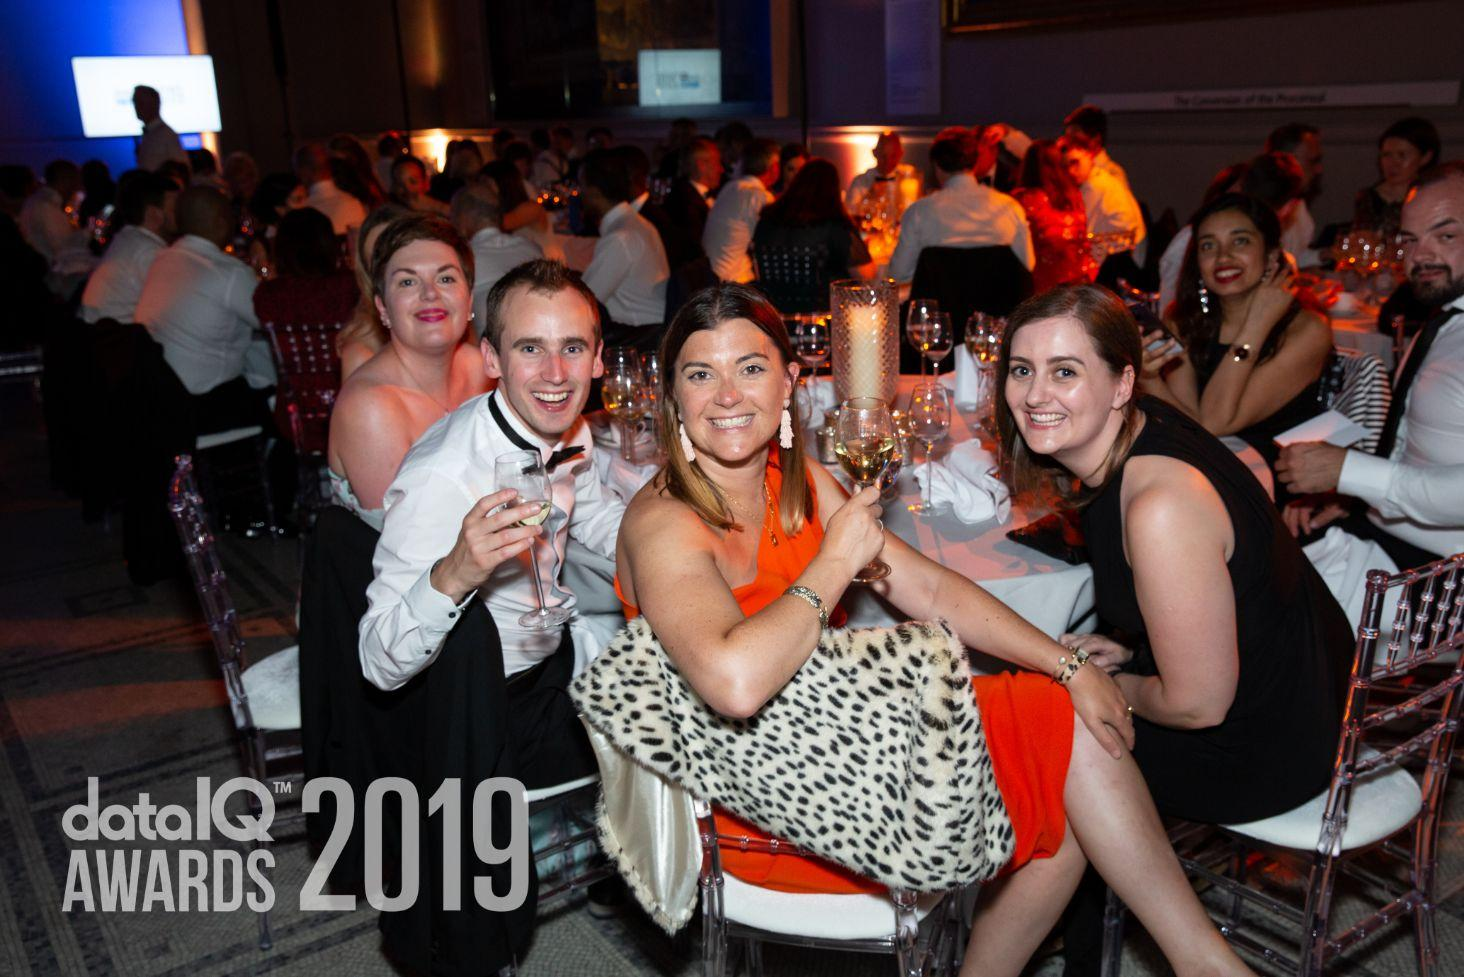 Awards 2019 Image 118